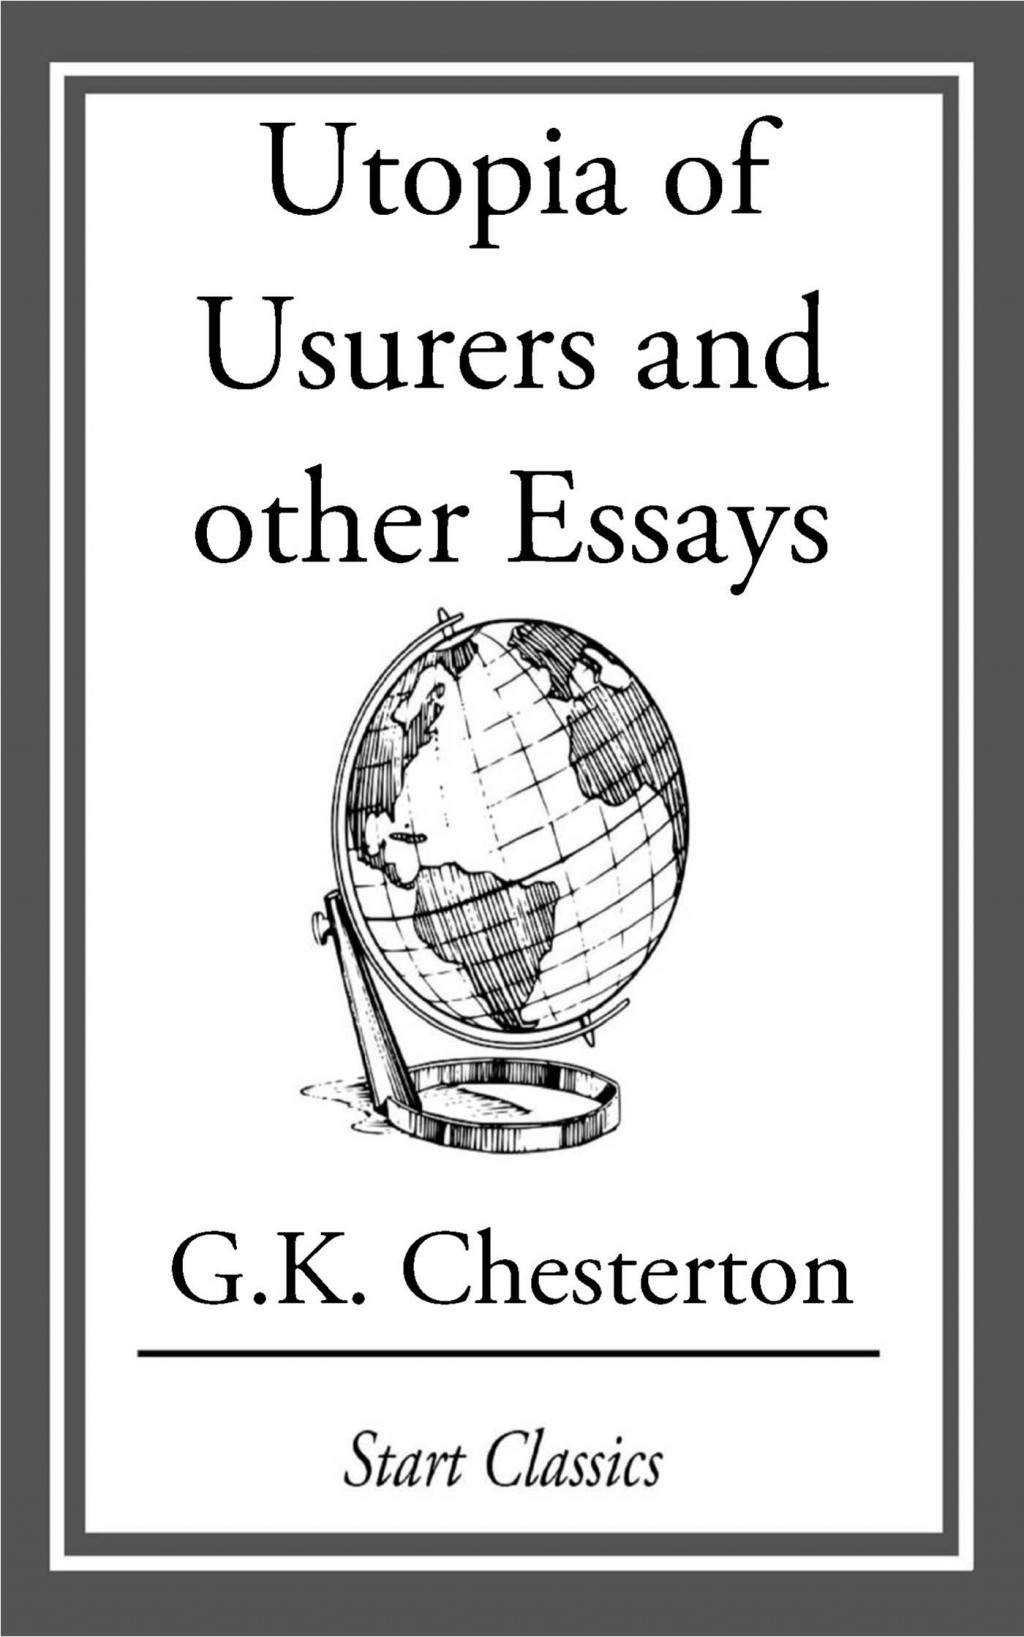 023 Essay Example Utopia Dystopia Usurers And Other Essays On By Thomas More Utopian Socialism Anarchy State Persuasive Mores Frightening Introduction Questions Society Conclusion Large